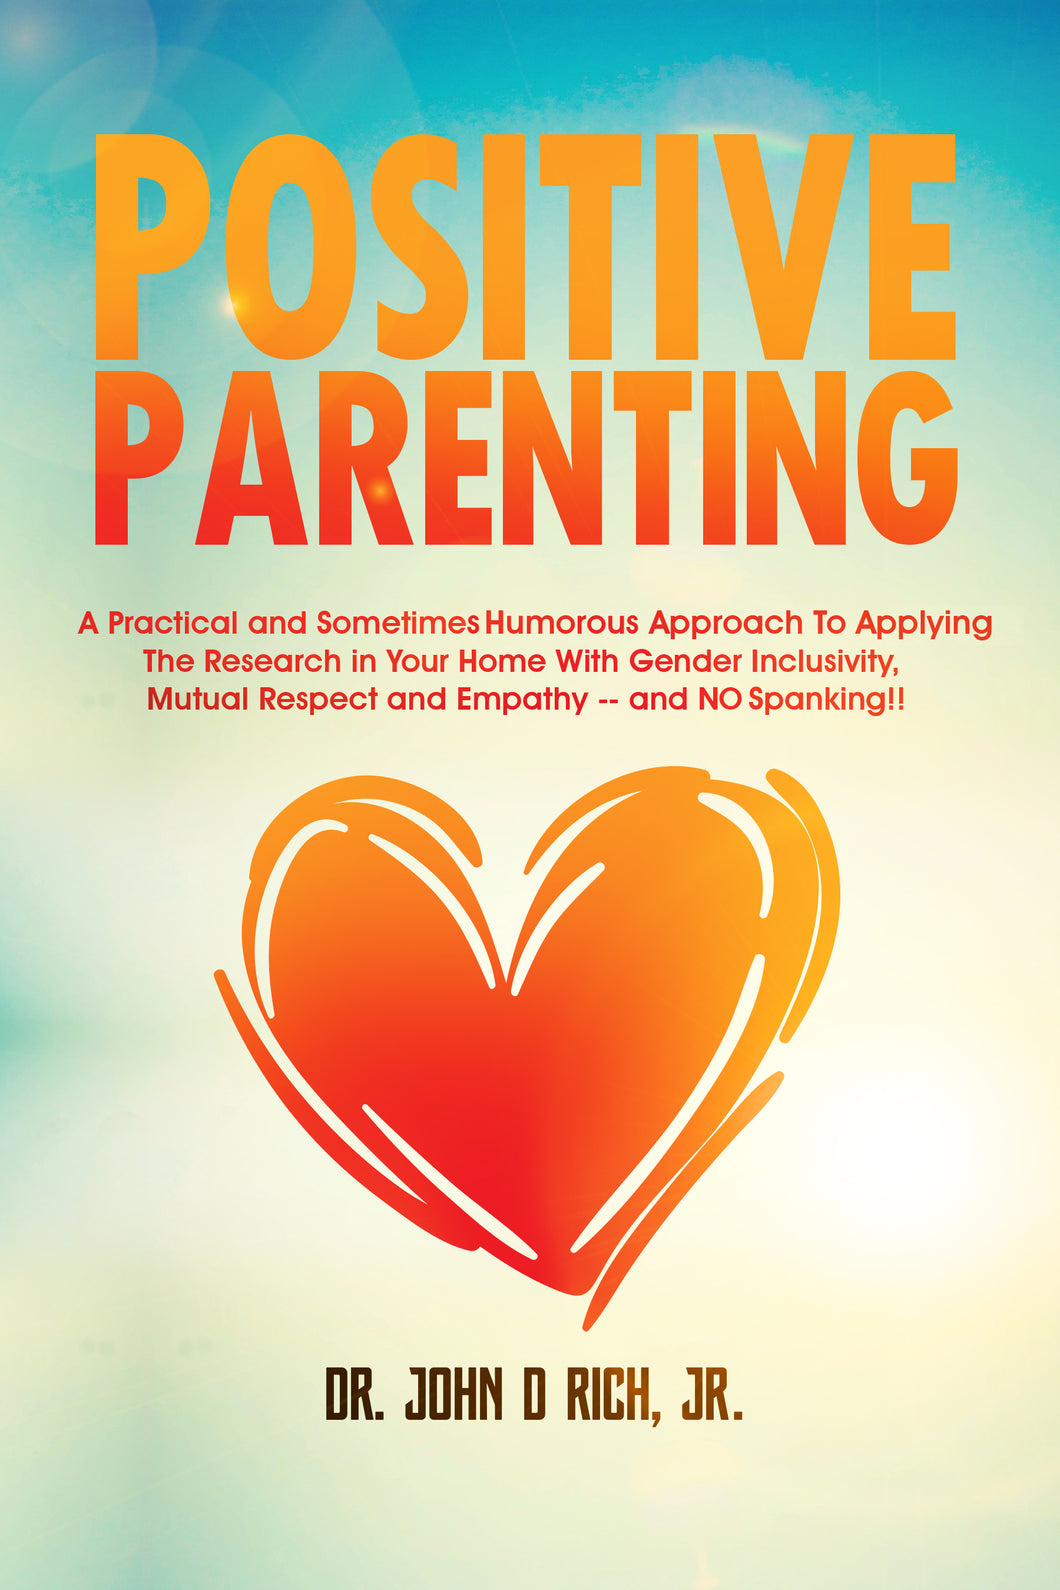 Positive Parenting: A Practical and Sometimes Humorous Approach To Applying  the Research in Your Home With Gender Inclusivity, Mutual Respect and Empathy -- and NO Spanking!!  (Paperback book by Dr. John D Rich, Jr.)